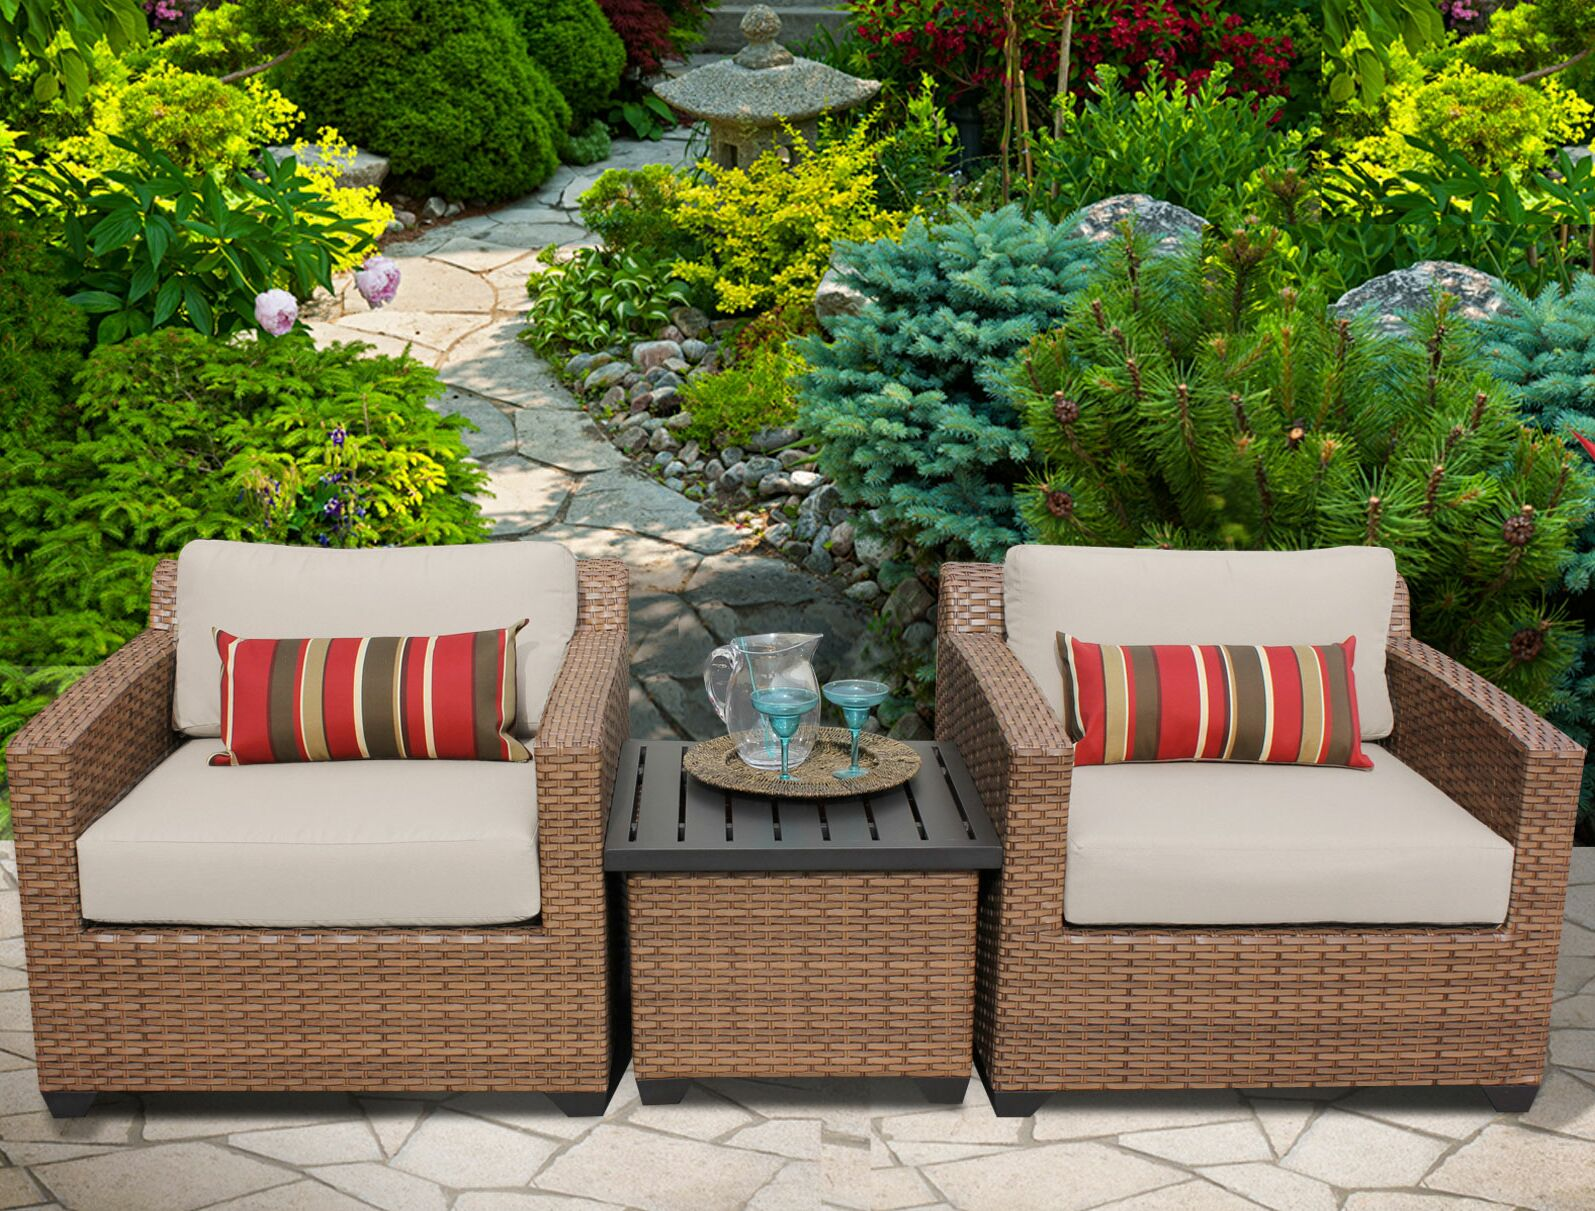 East Village 3 Piece Rattan Sectional Set with Cushions Color: Beige